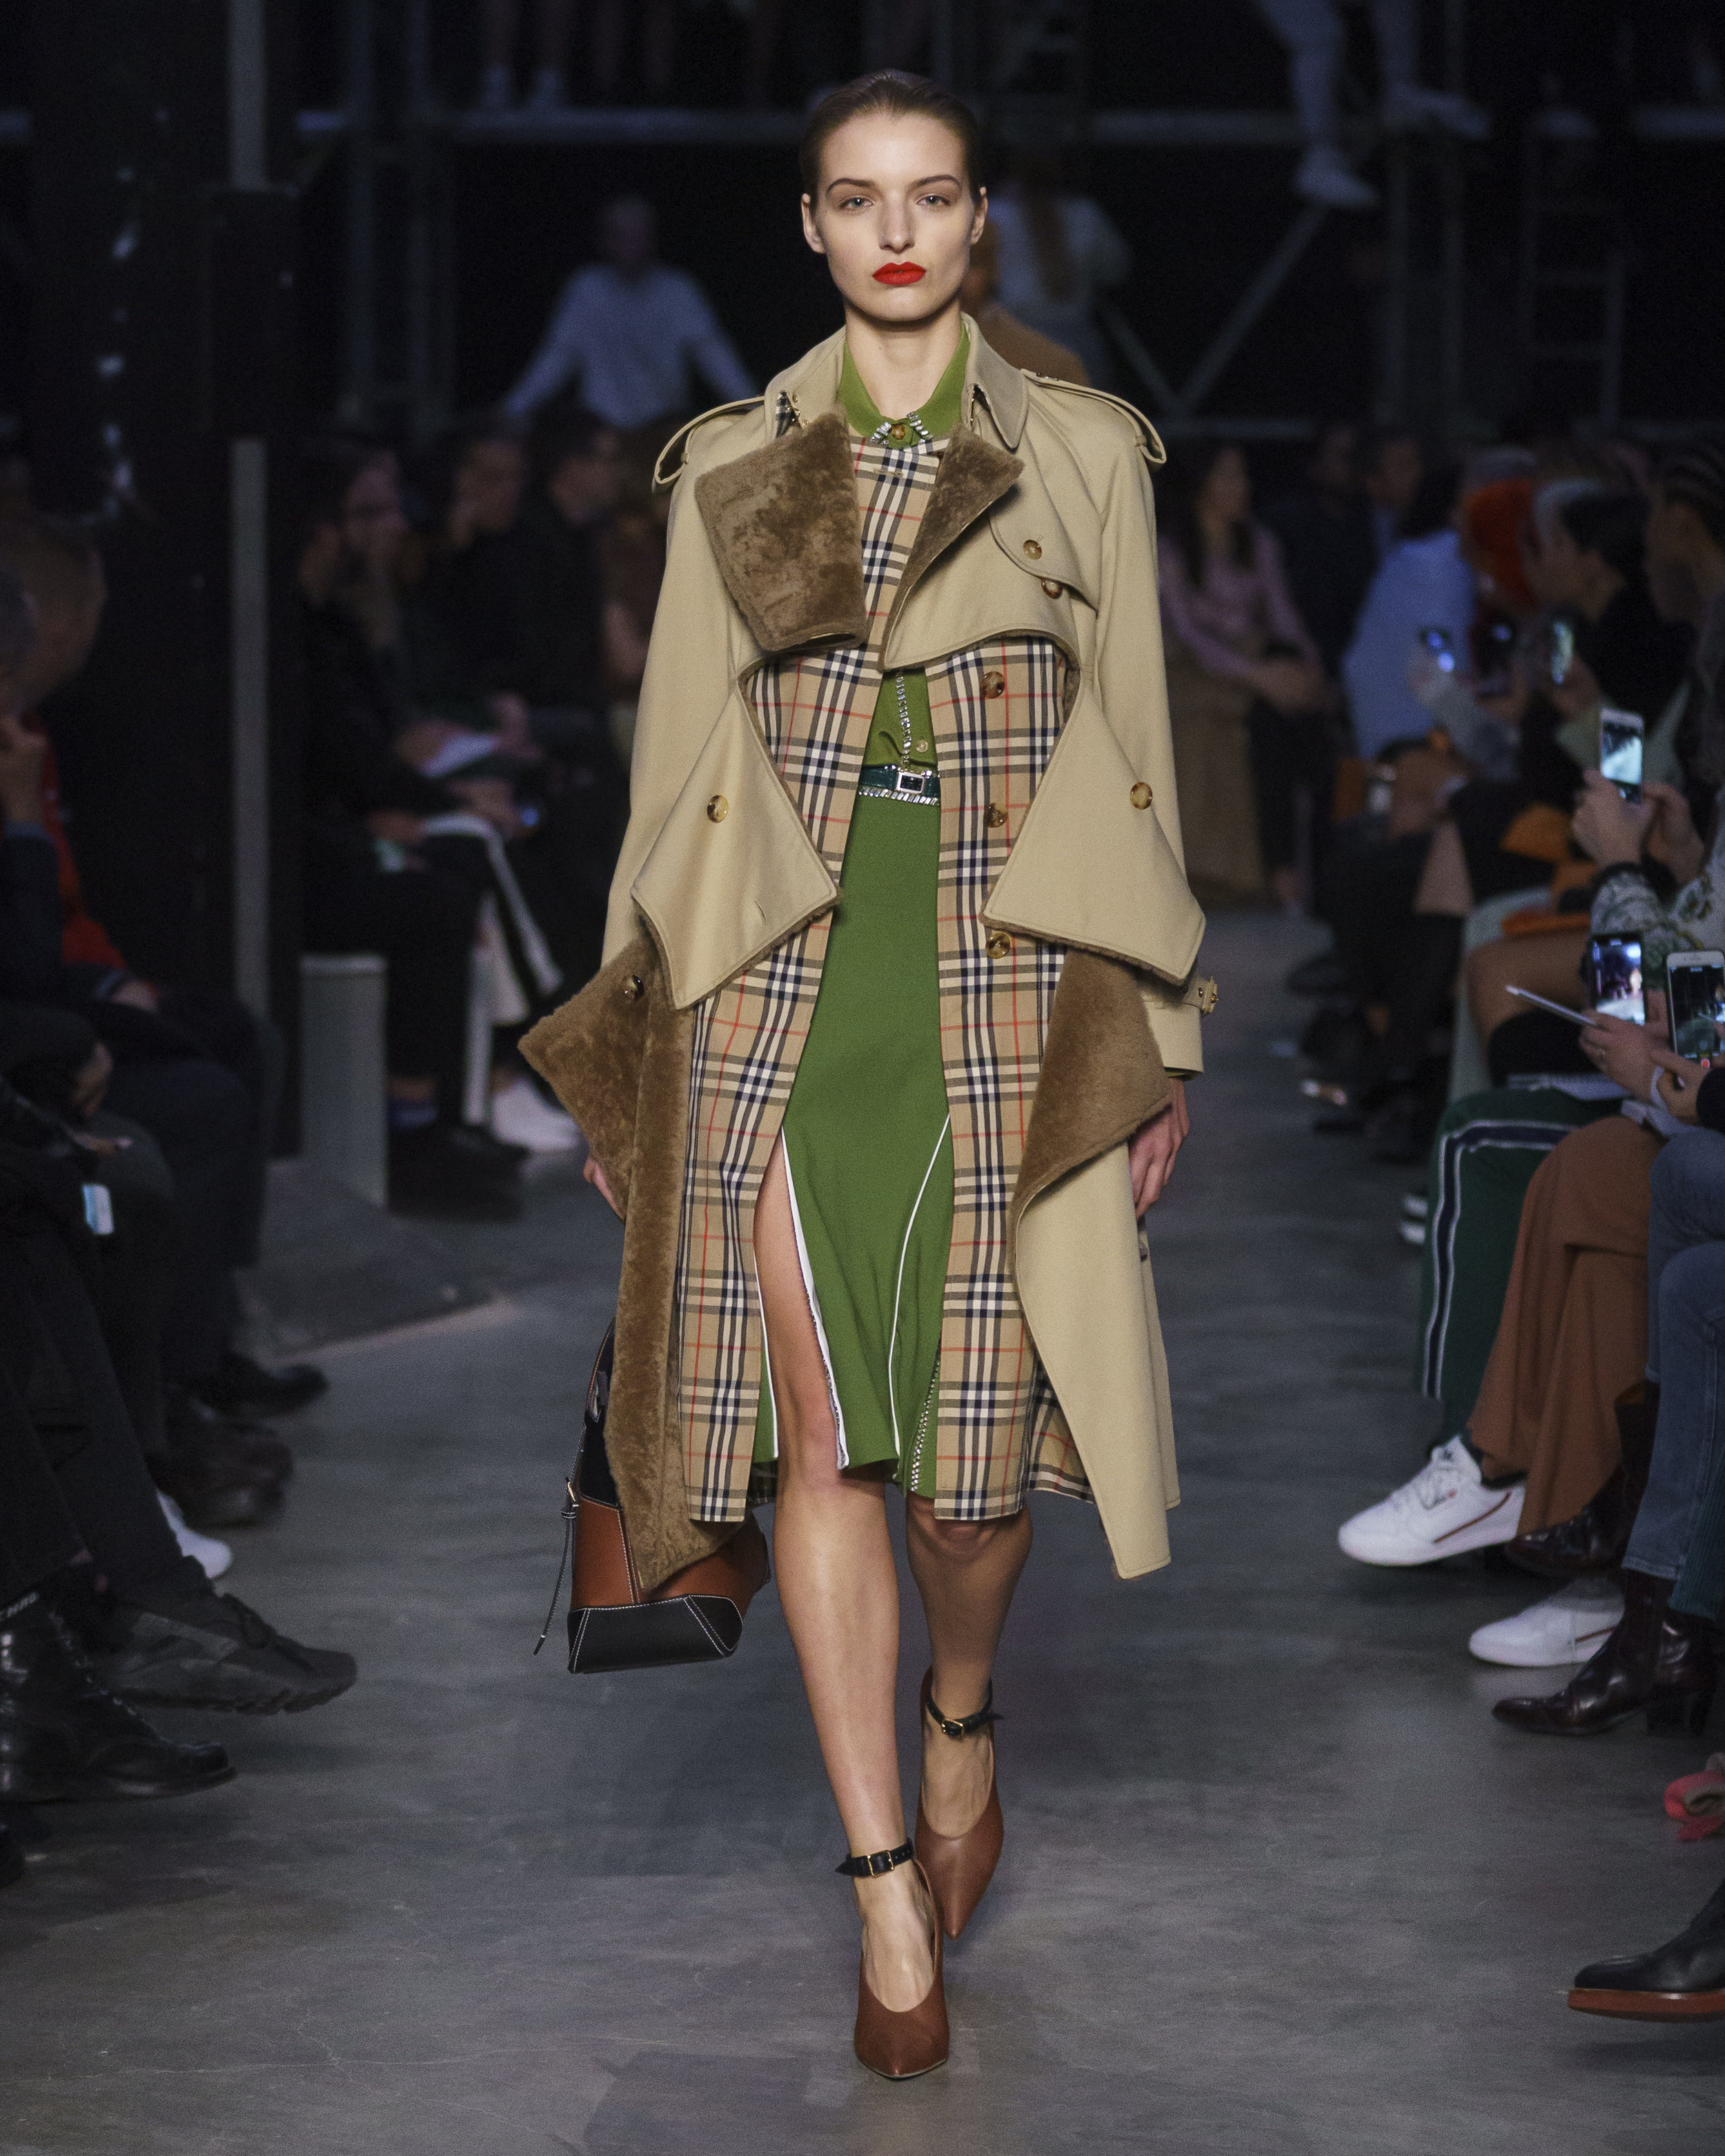 Burberry Autumn_Winter 2019 Collection - Look 94.jpg